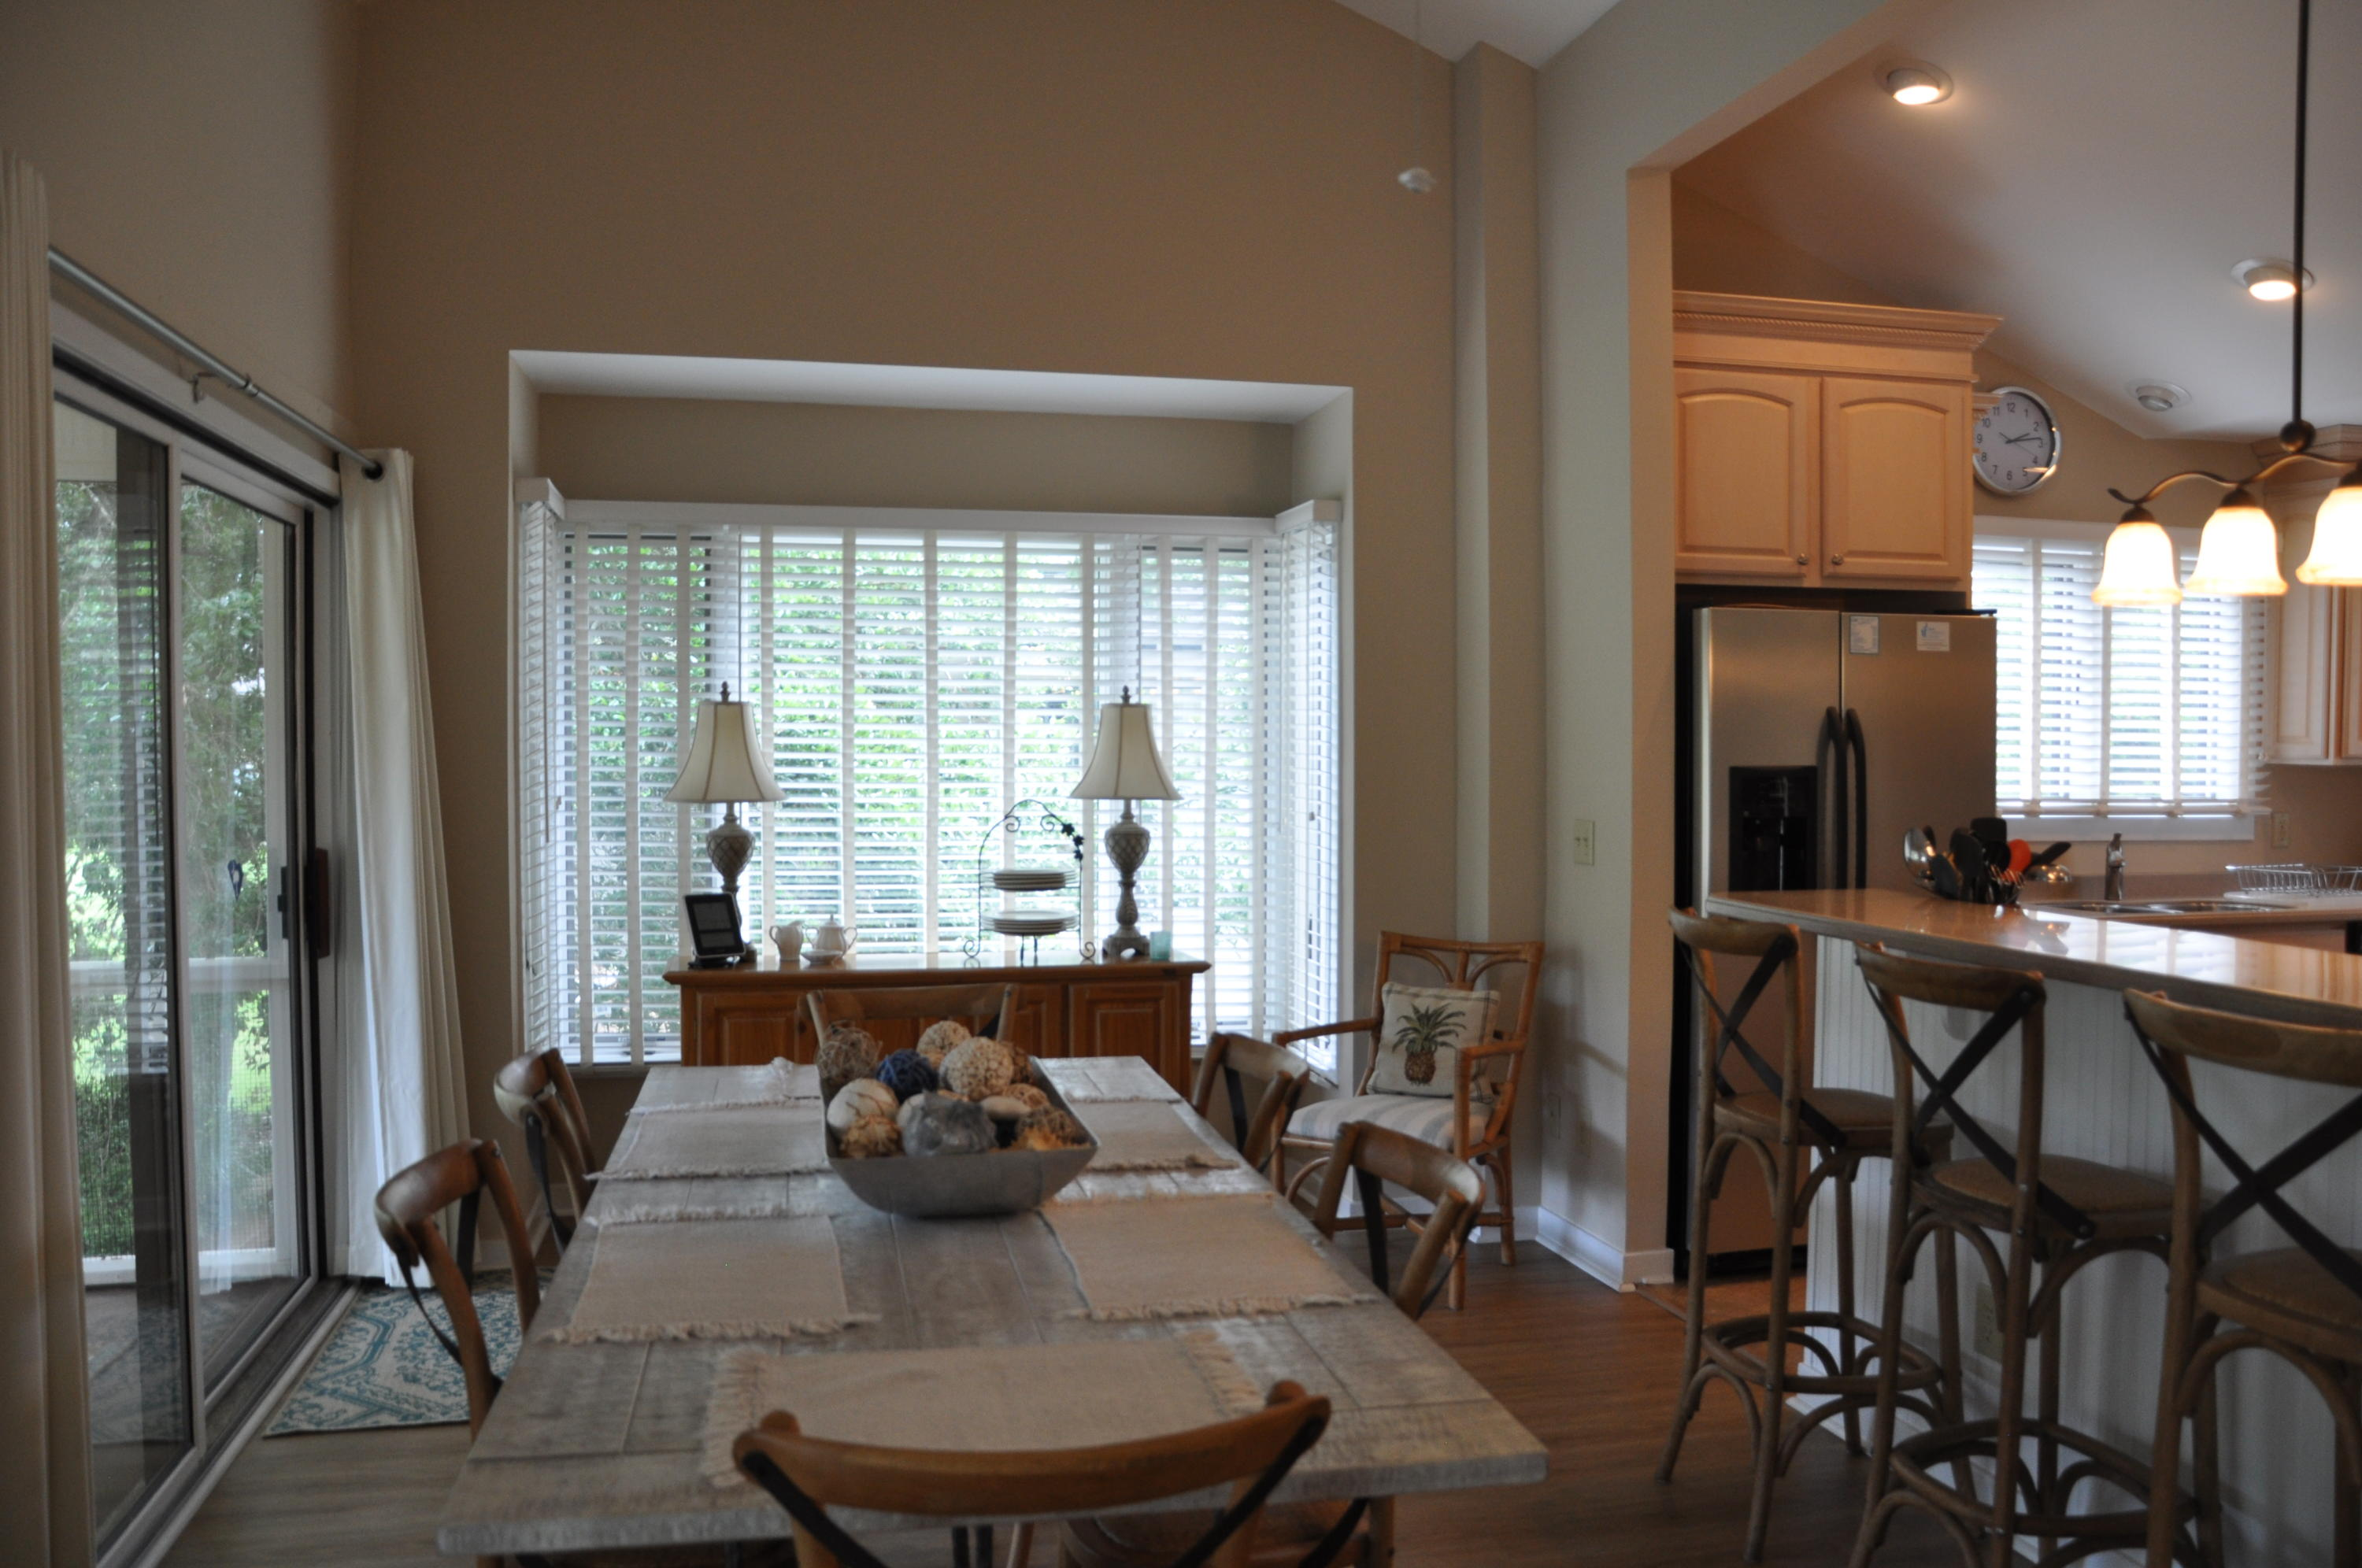 Fairway Villas Homes For Sale - 25 Fairway Dunes (1/6 Share), Isle of Palms, SC - 5